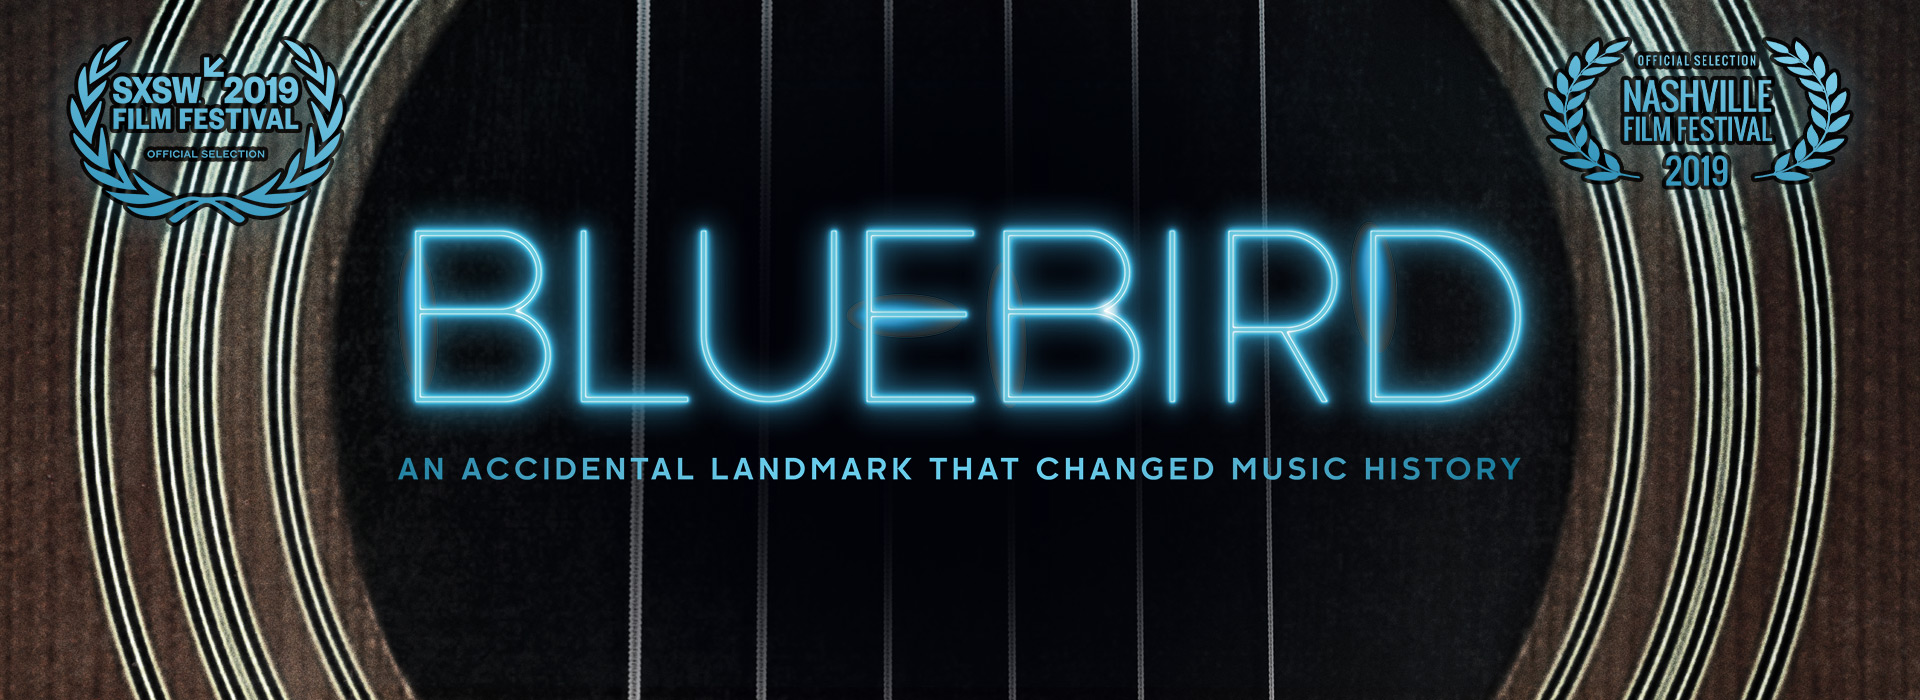 BLUEBIRD – AN ACCIDENTAL LANDMARK THAT CHANGED MUSIC HISTORY